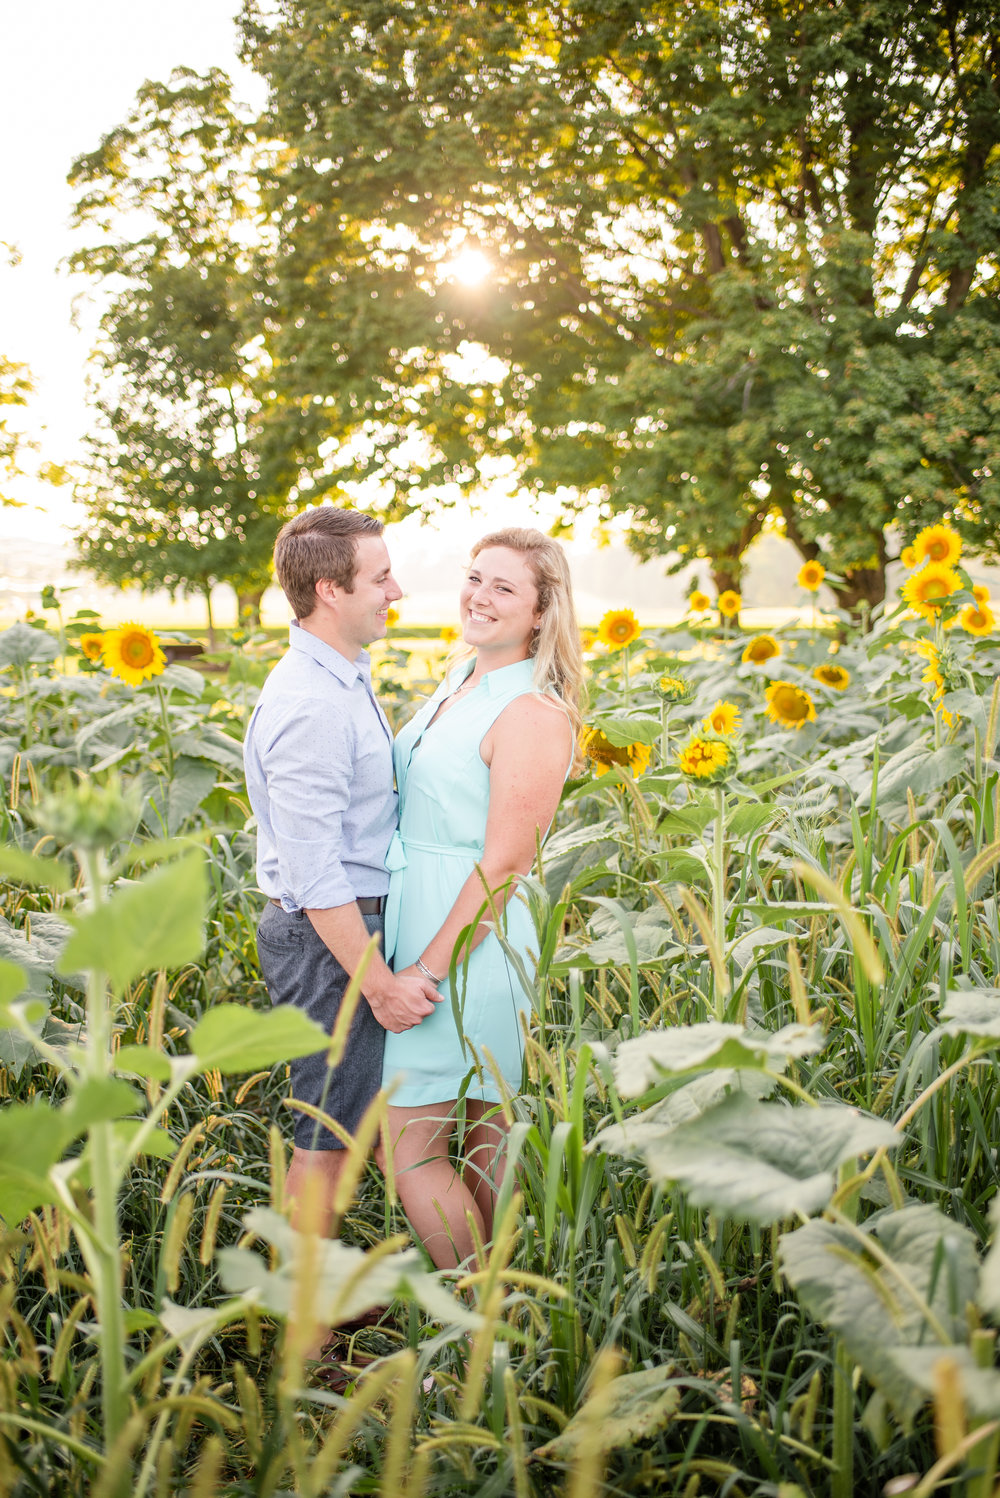 Sarah + Garrett E Session (9 of 123).jpg